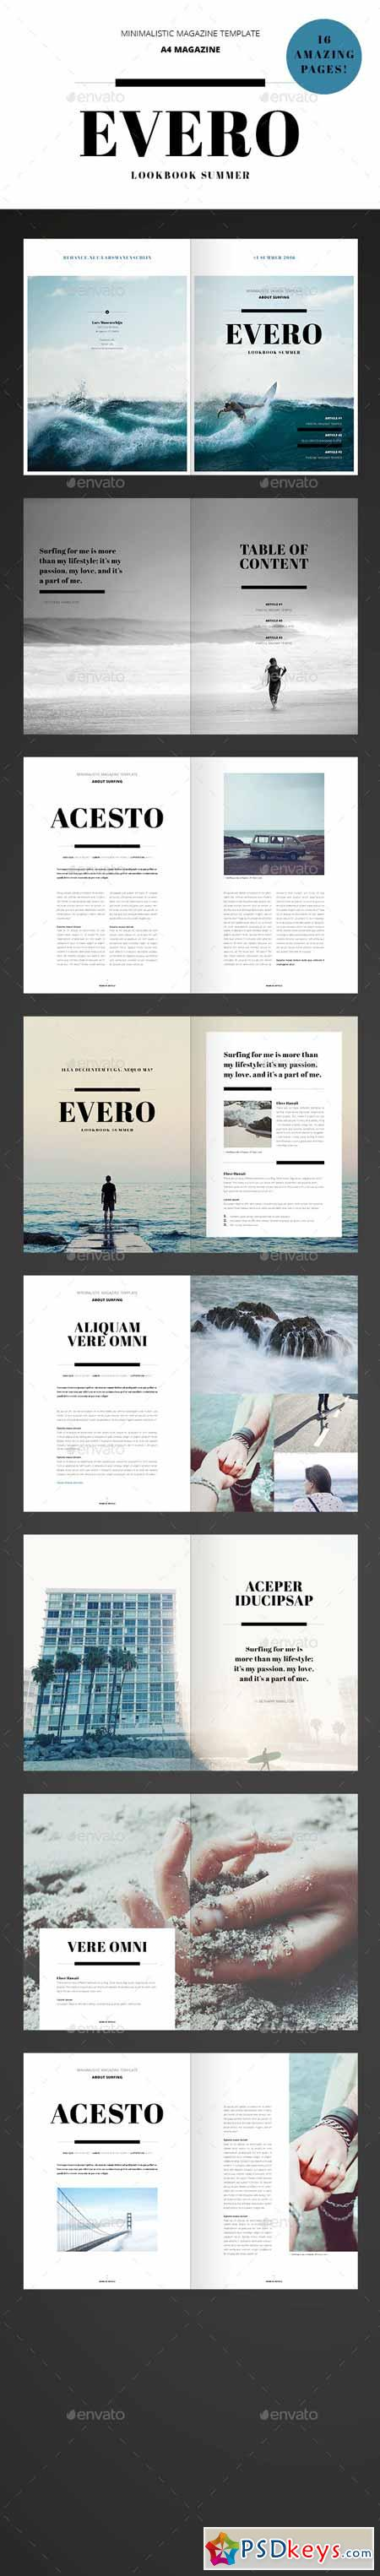 Amazing Minimal Magazine - InDesign Template 11957652 » Free ...